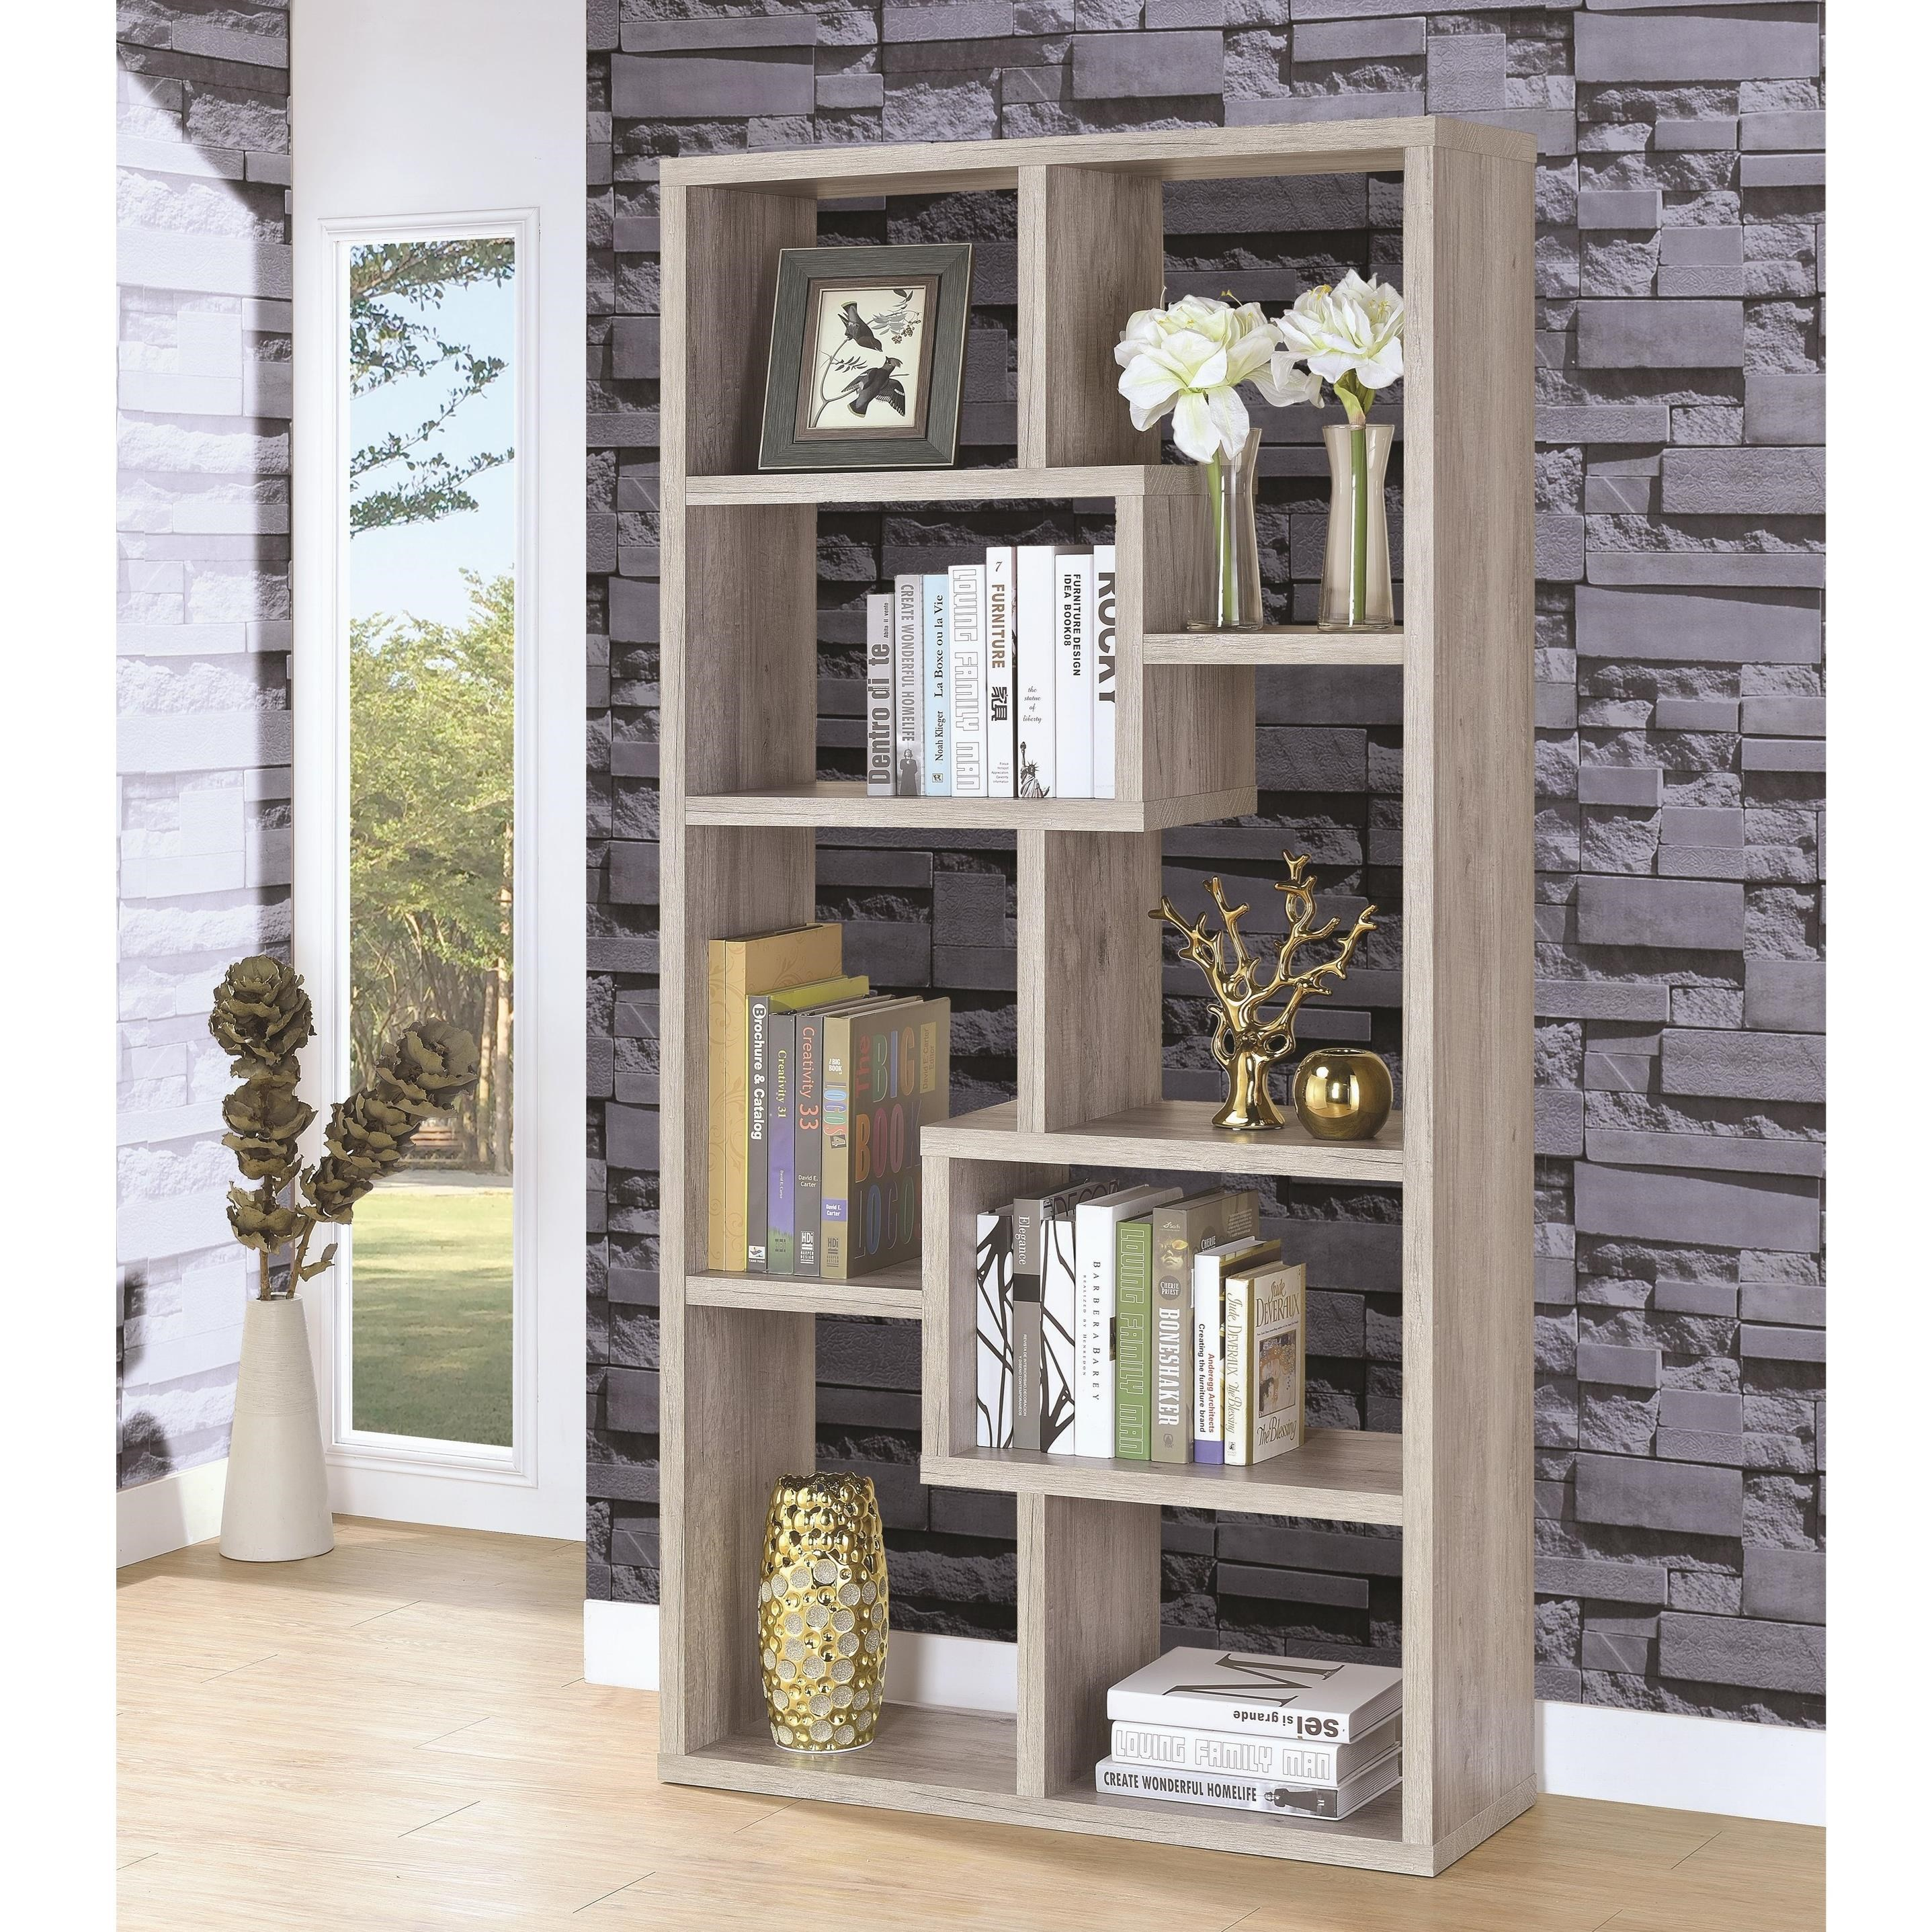 Bookcases 8 Shelf Bookcase by Coaster at Carolina Direct